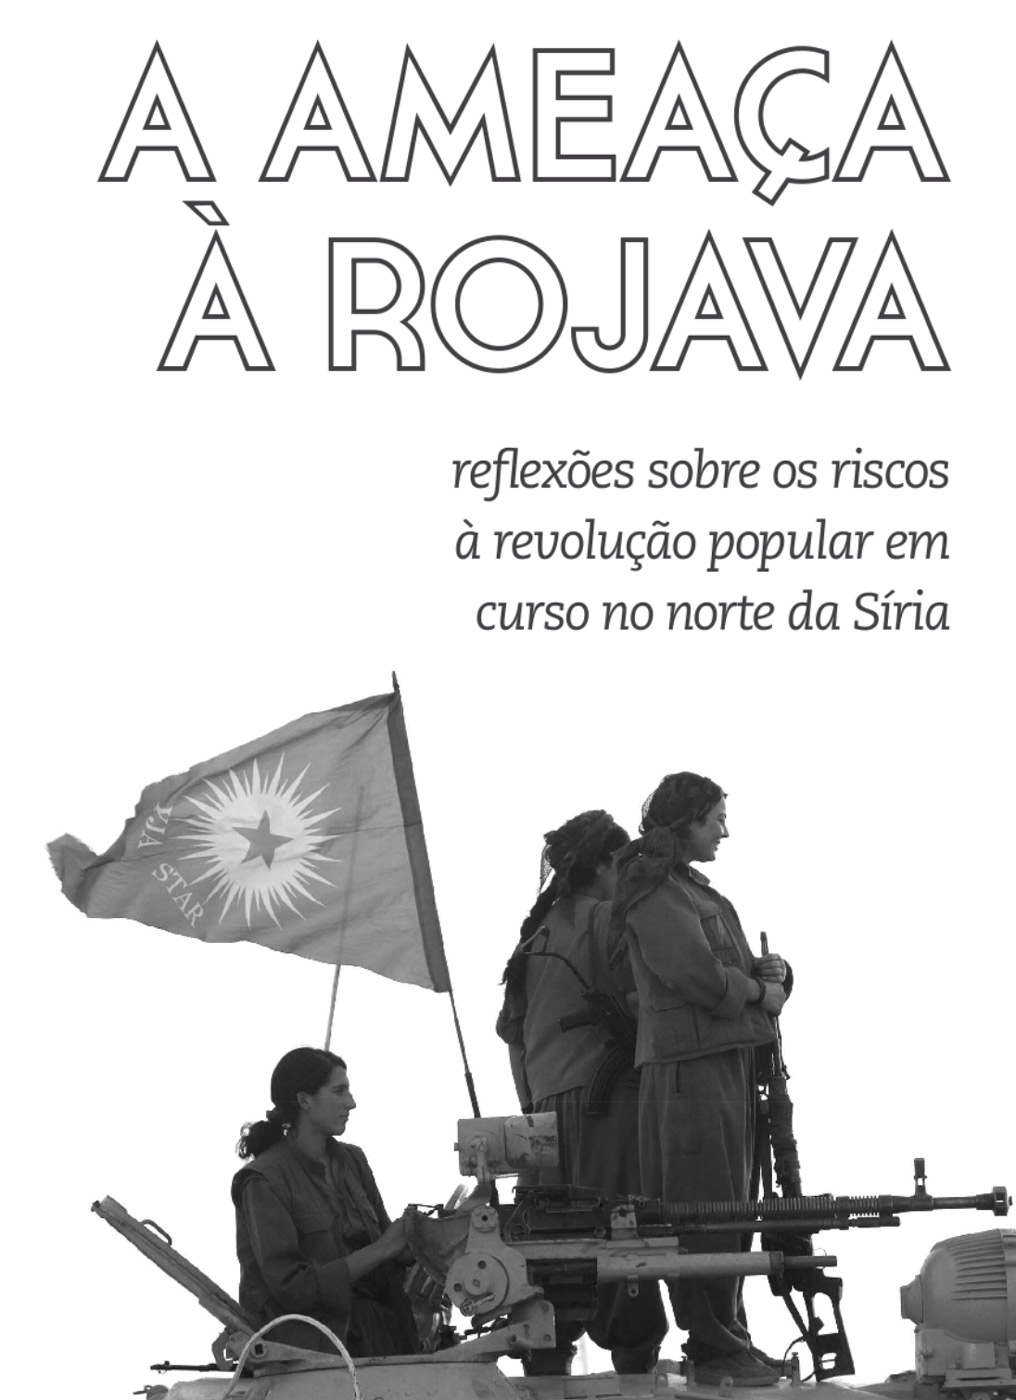 Photo of 'A ameaça a Rojava' front cover